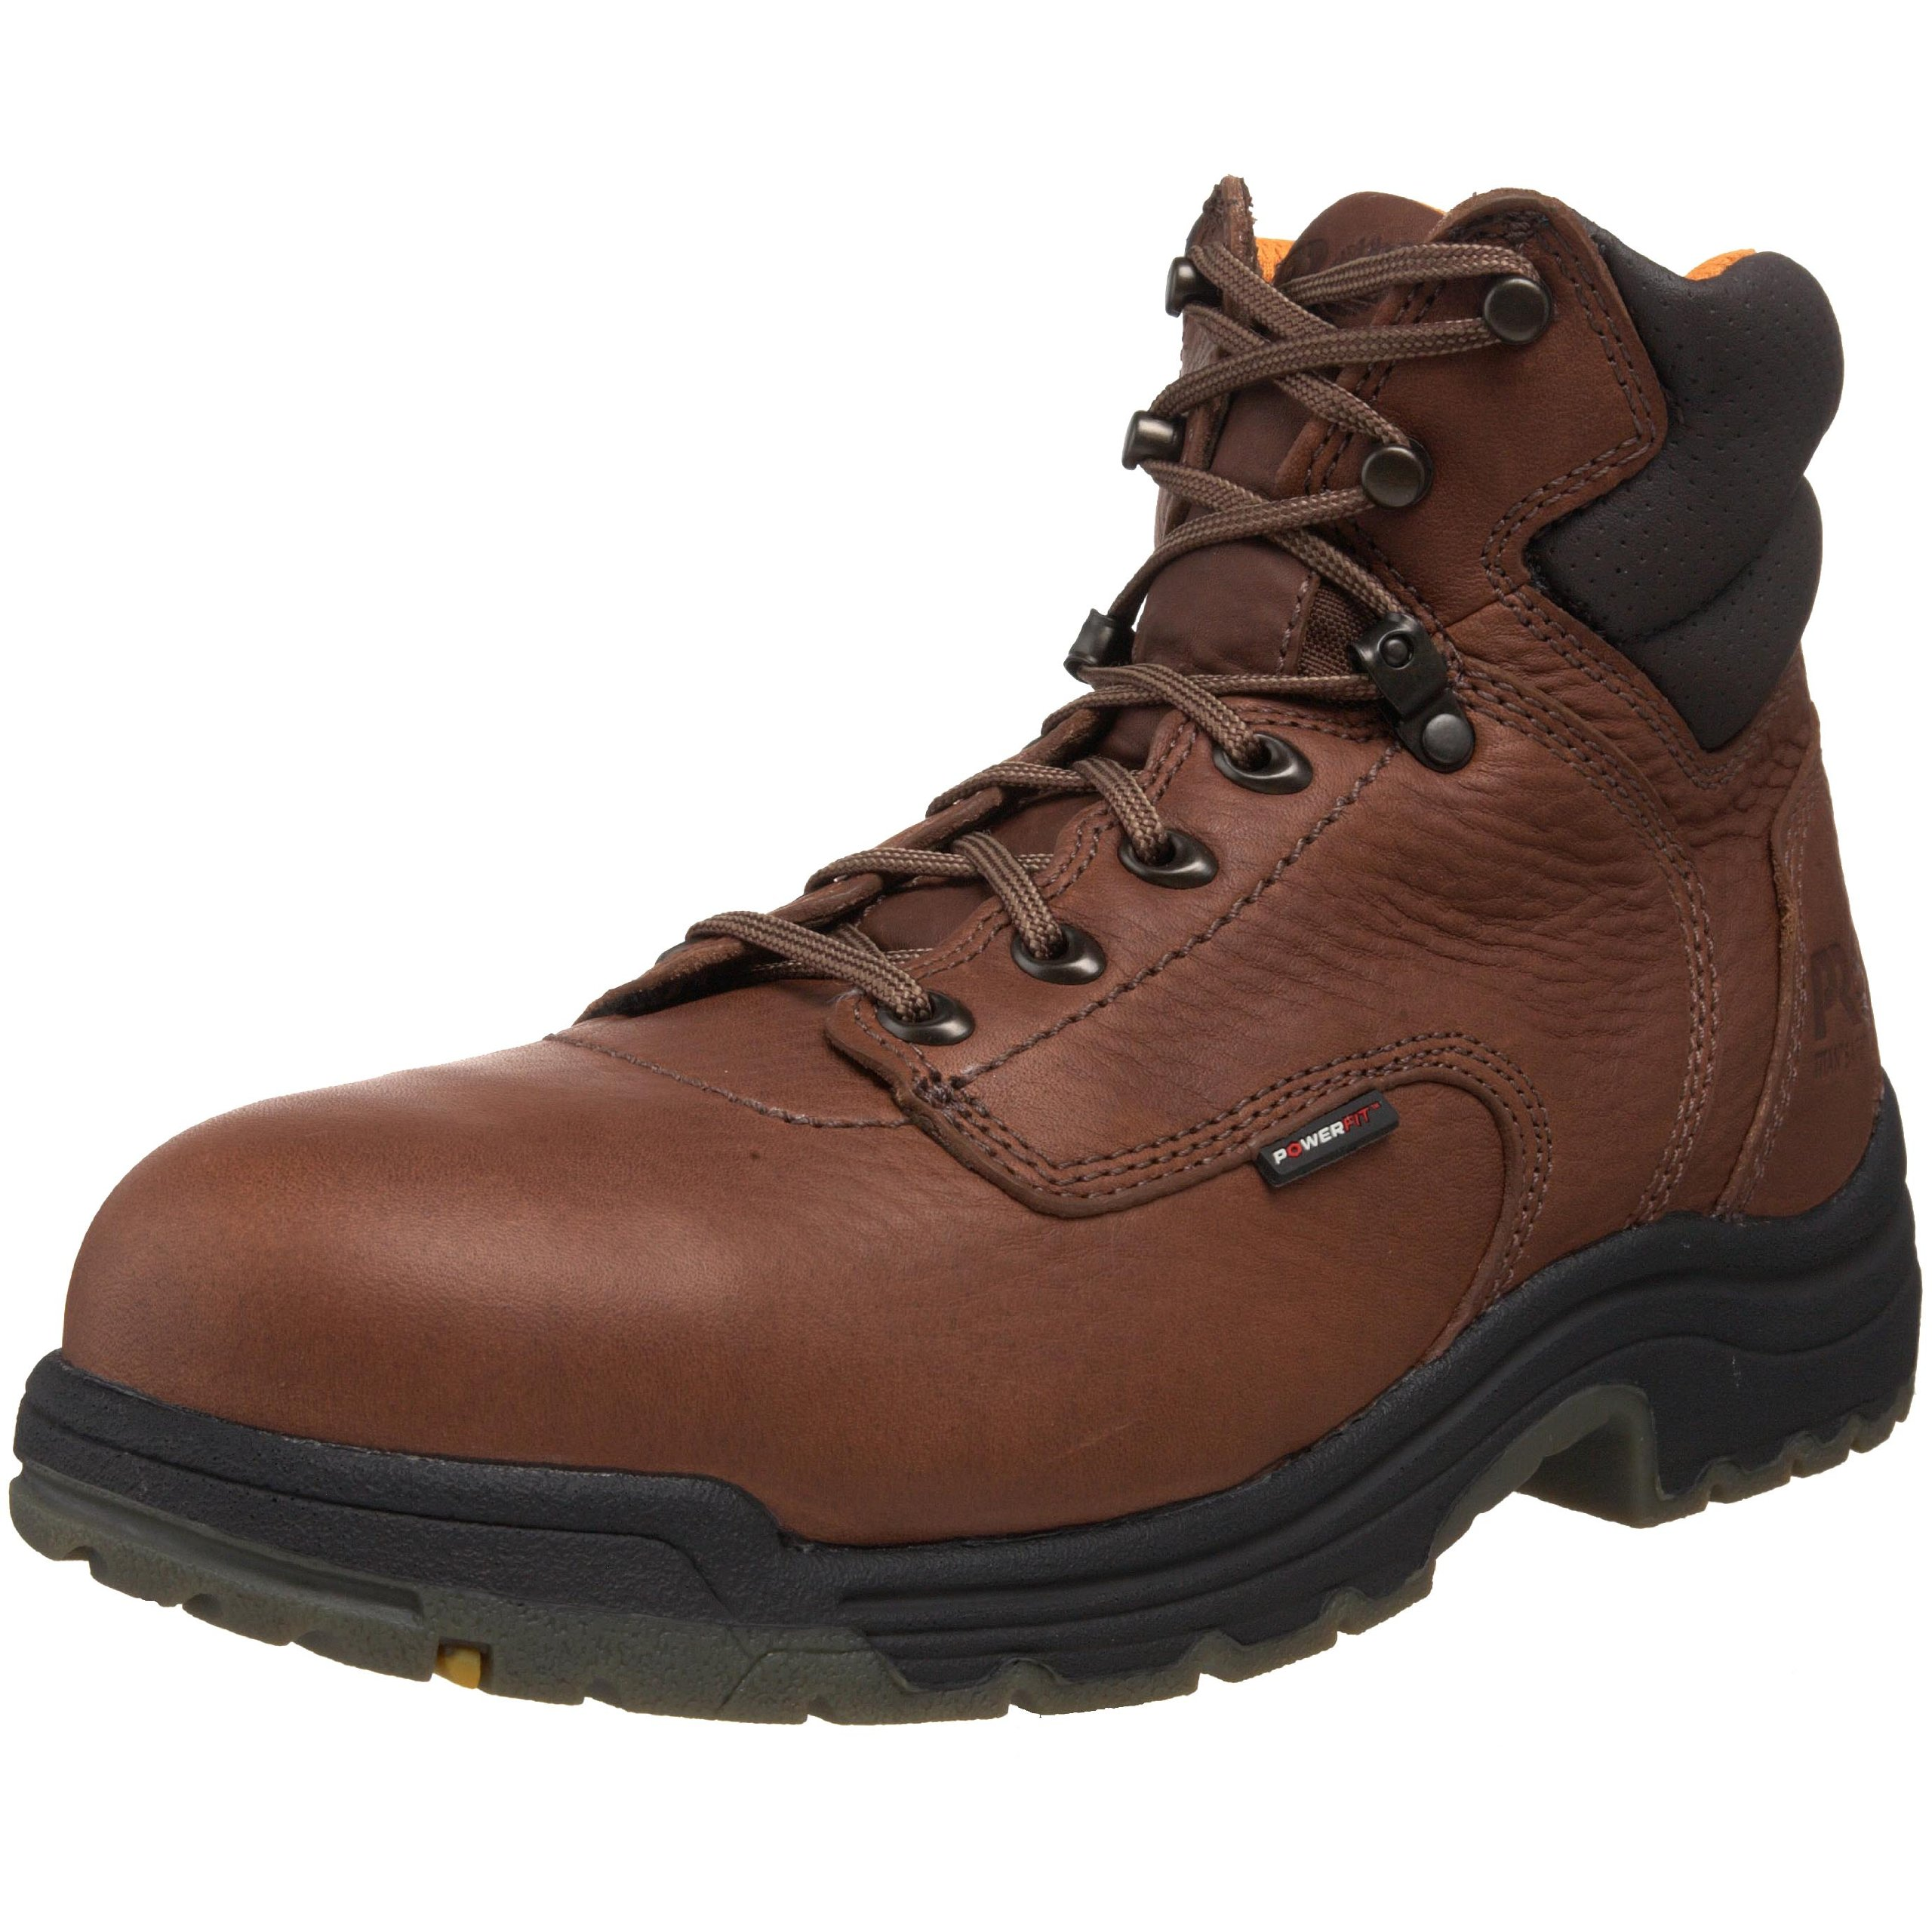 Men's 6 inch Timberland Pro TiTAN Safety Toe Boots Coffee, Coffee, 10 2E